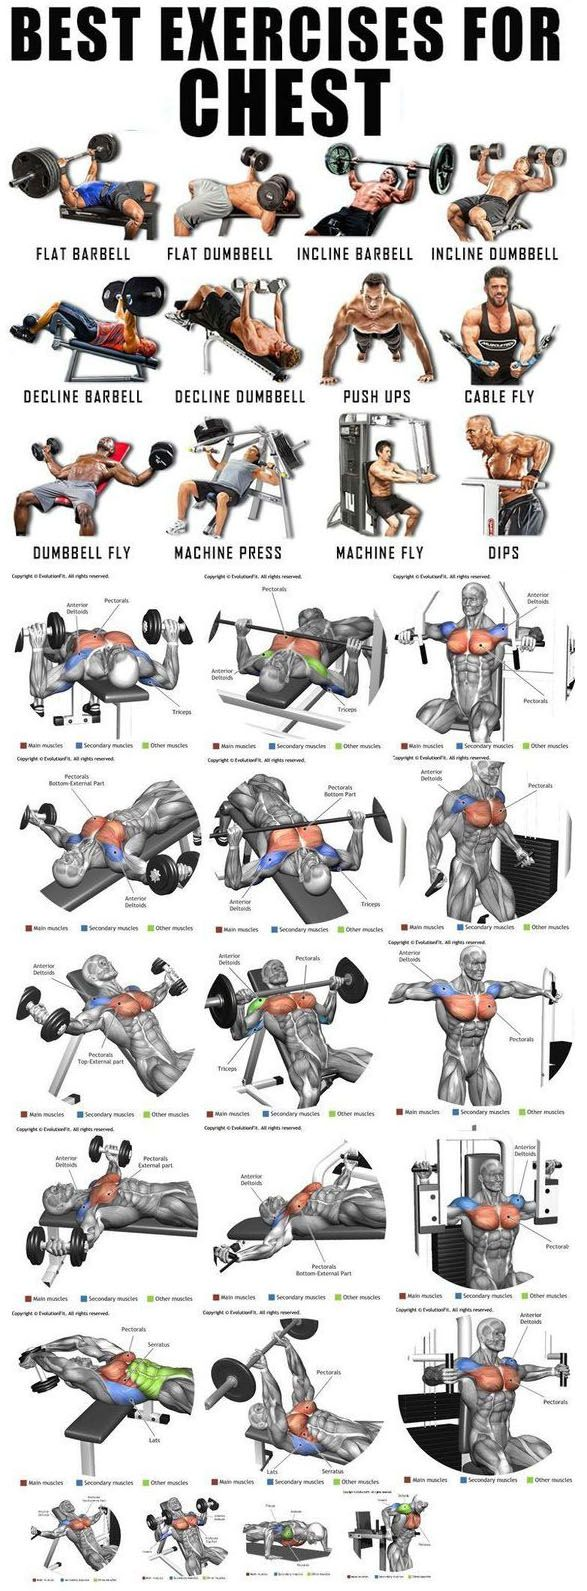 🔥DROP SETS FOR CHEST WORKOUT